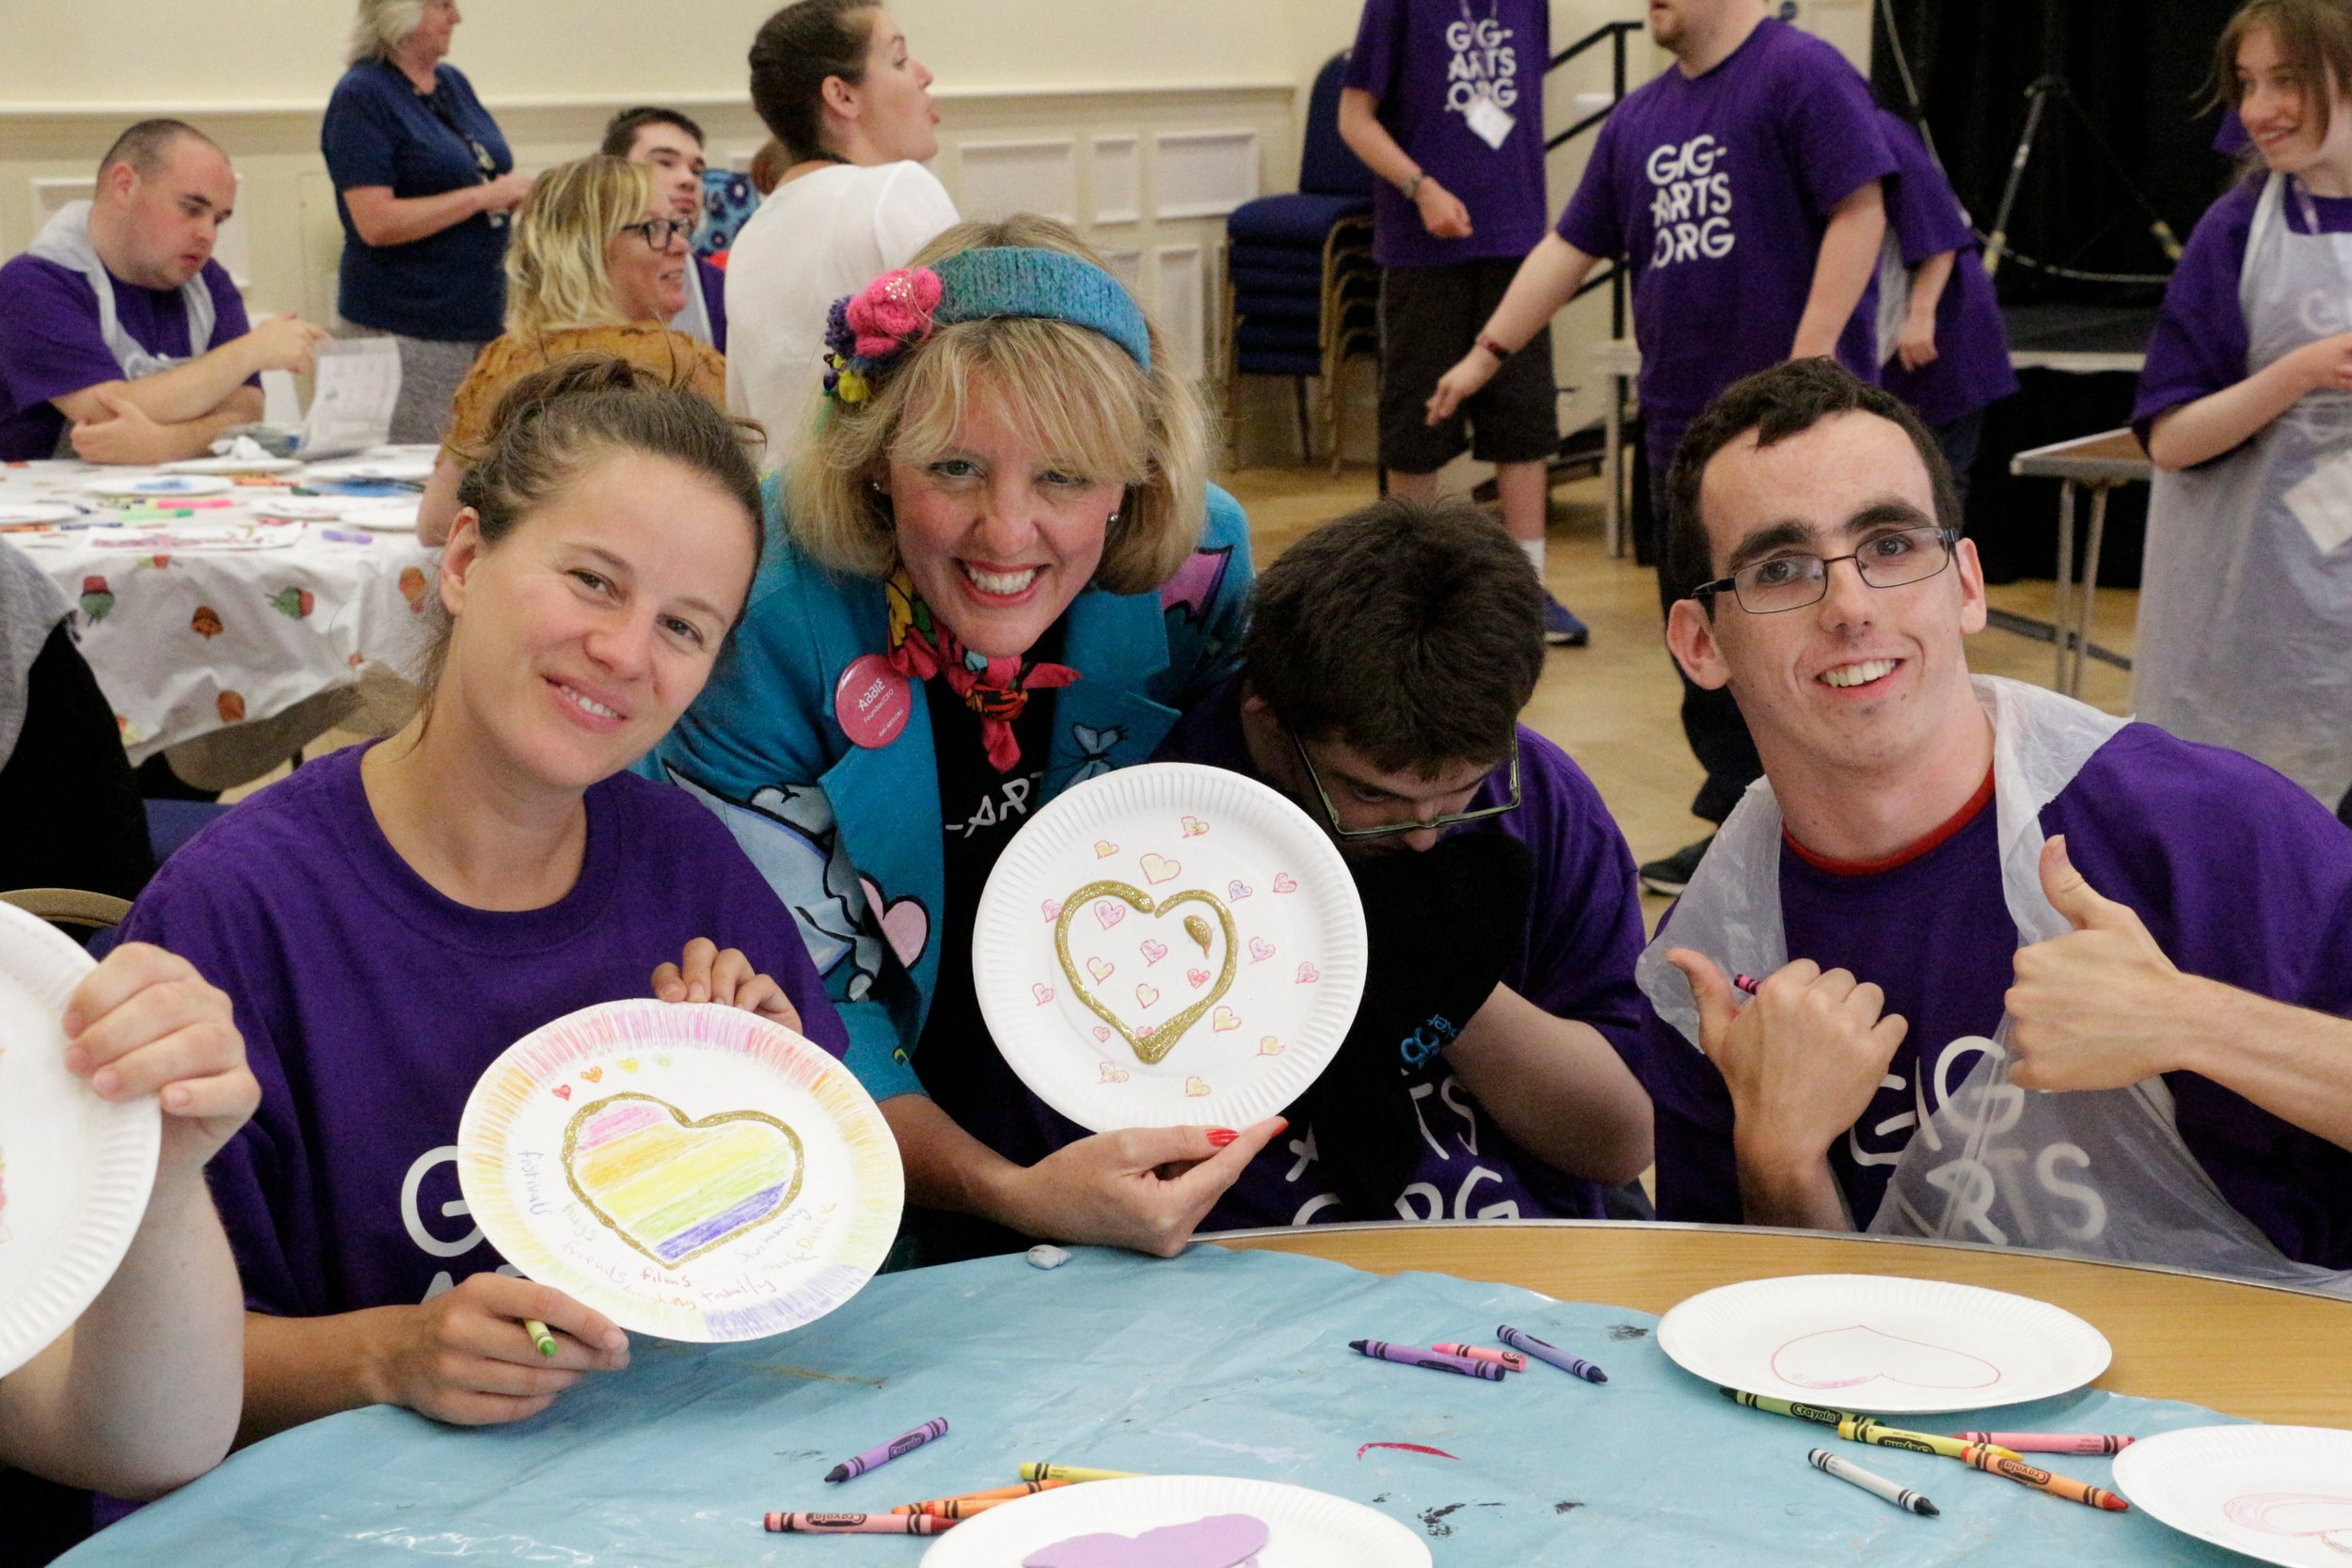 Grace and Abbie work with the teams to create love heart artworks to give to the community.